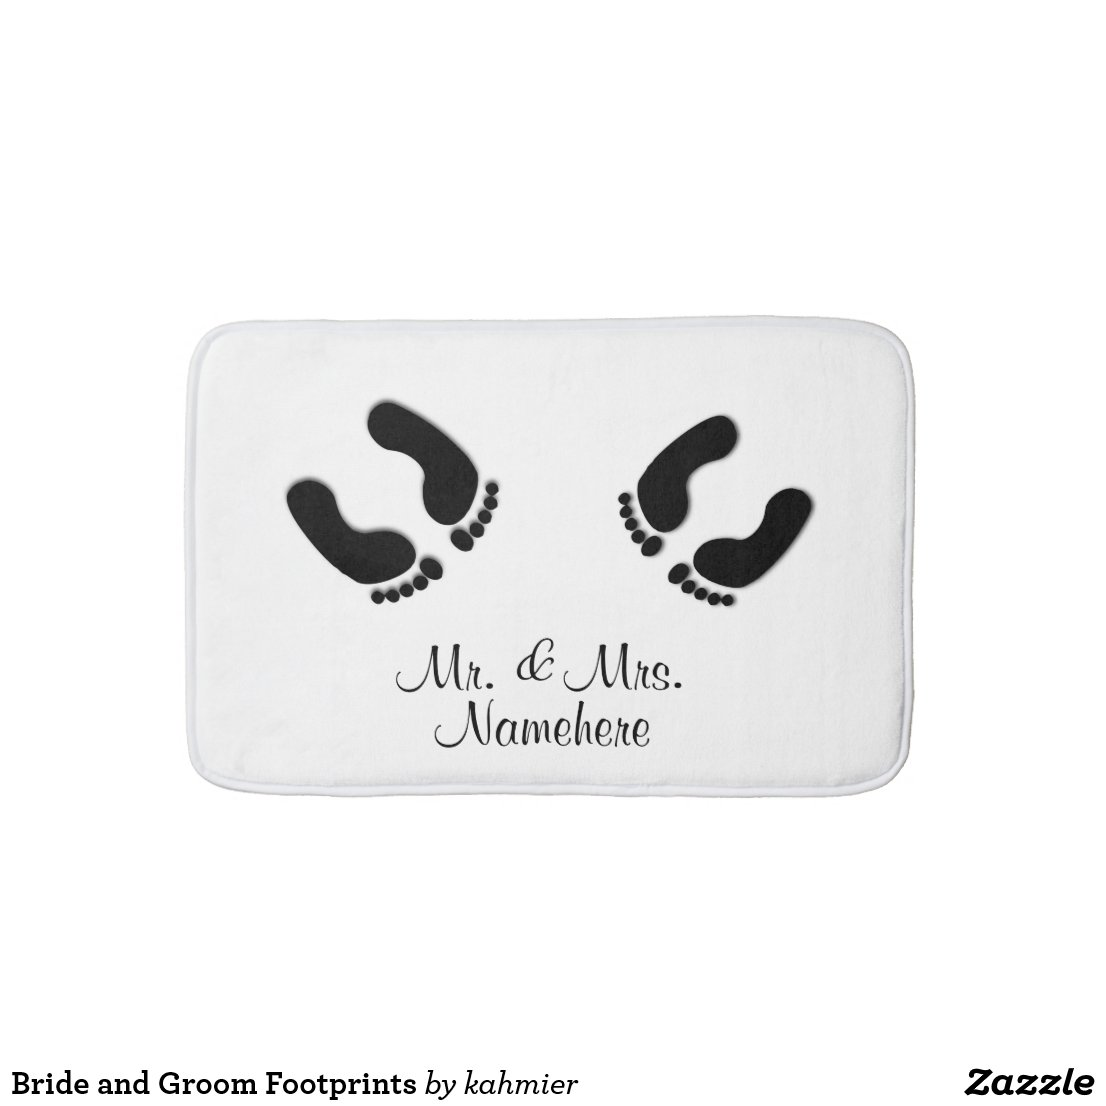 Bride and Groom Footprints Bathroom Mat